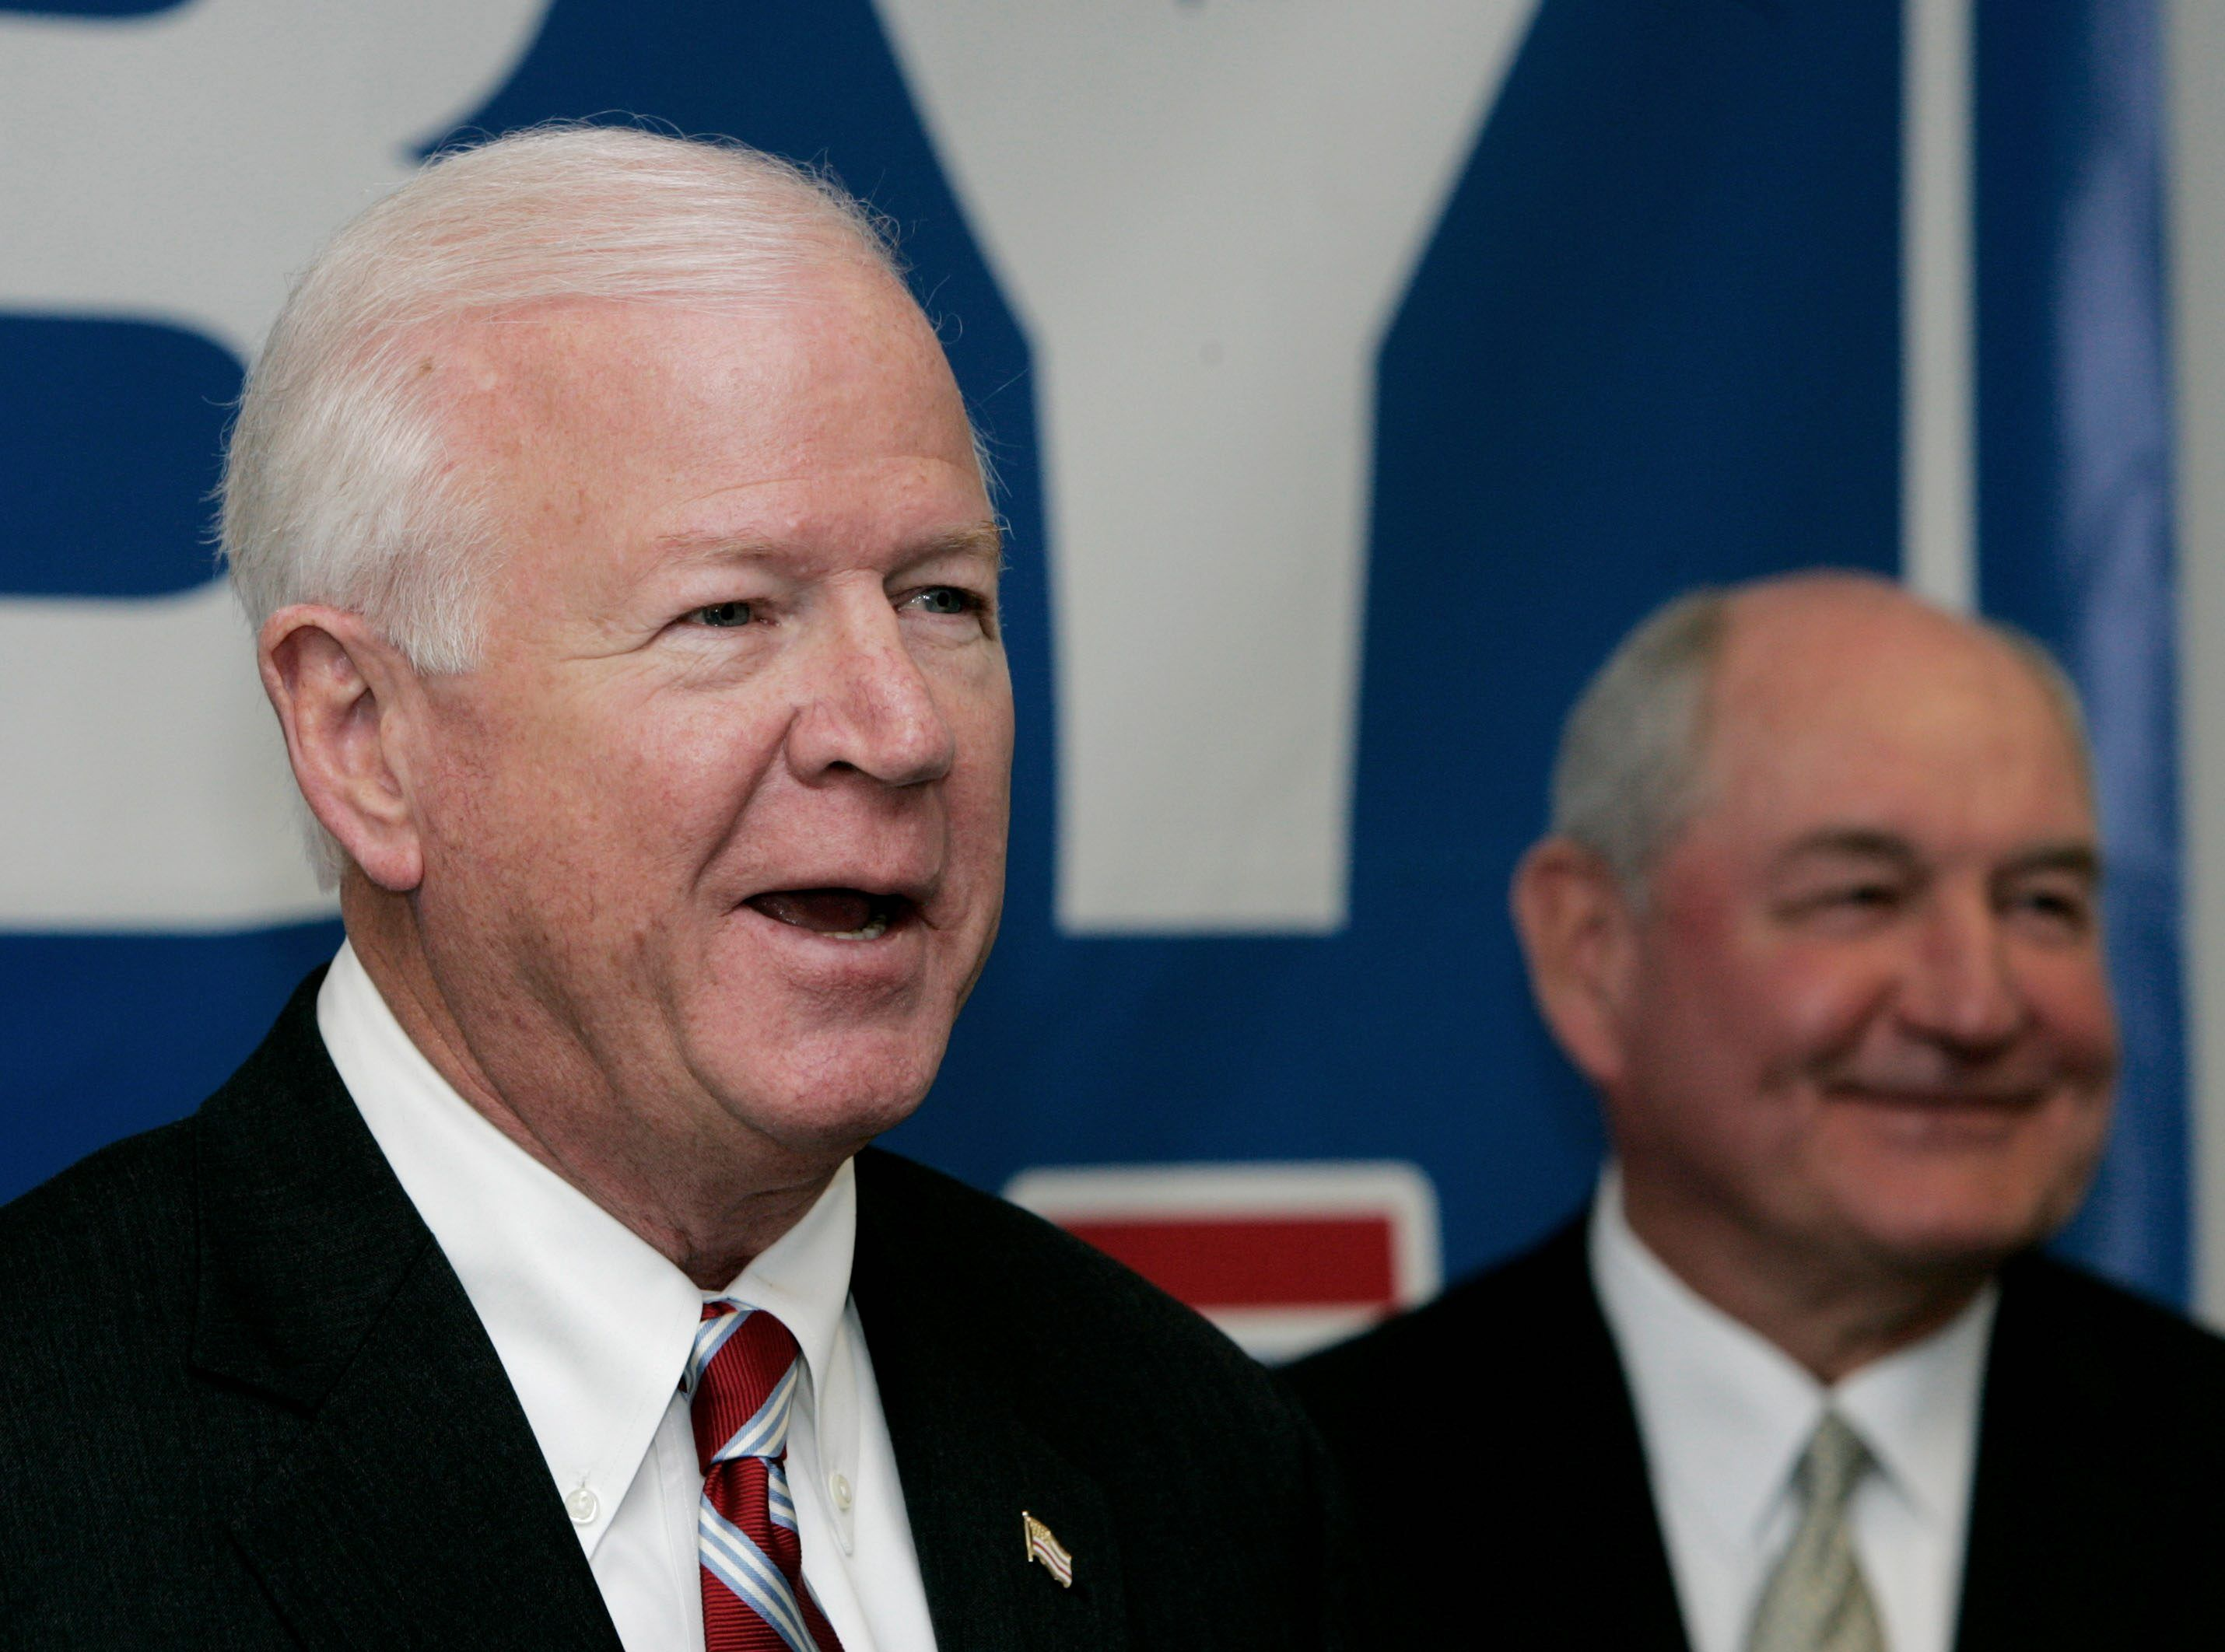 GOP hoping for Senate gains tread carefully around Tea Party